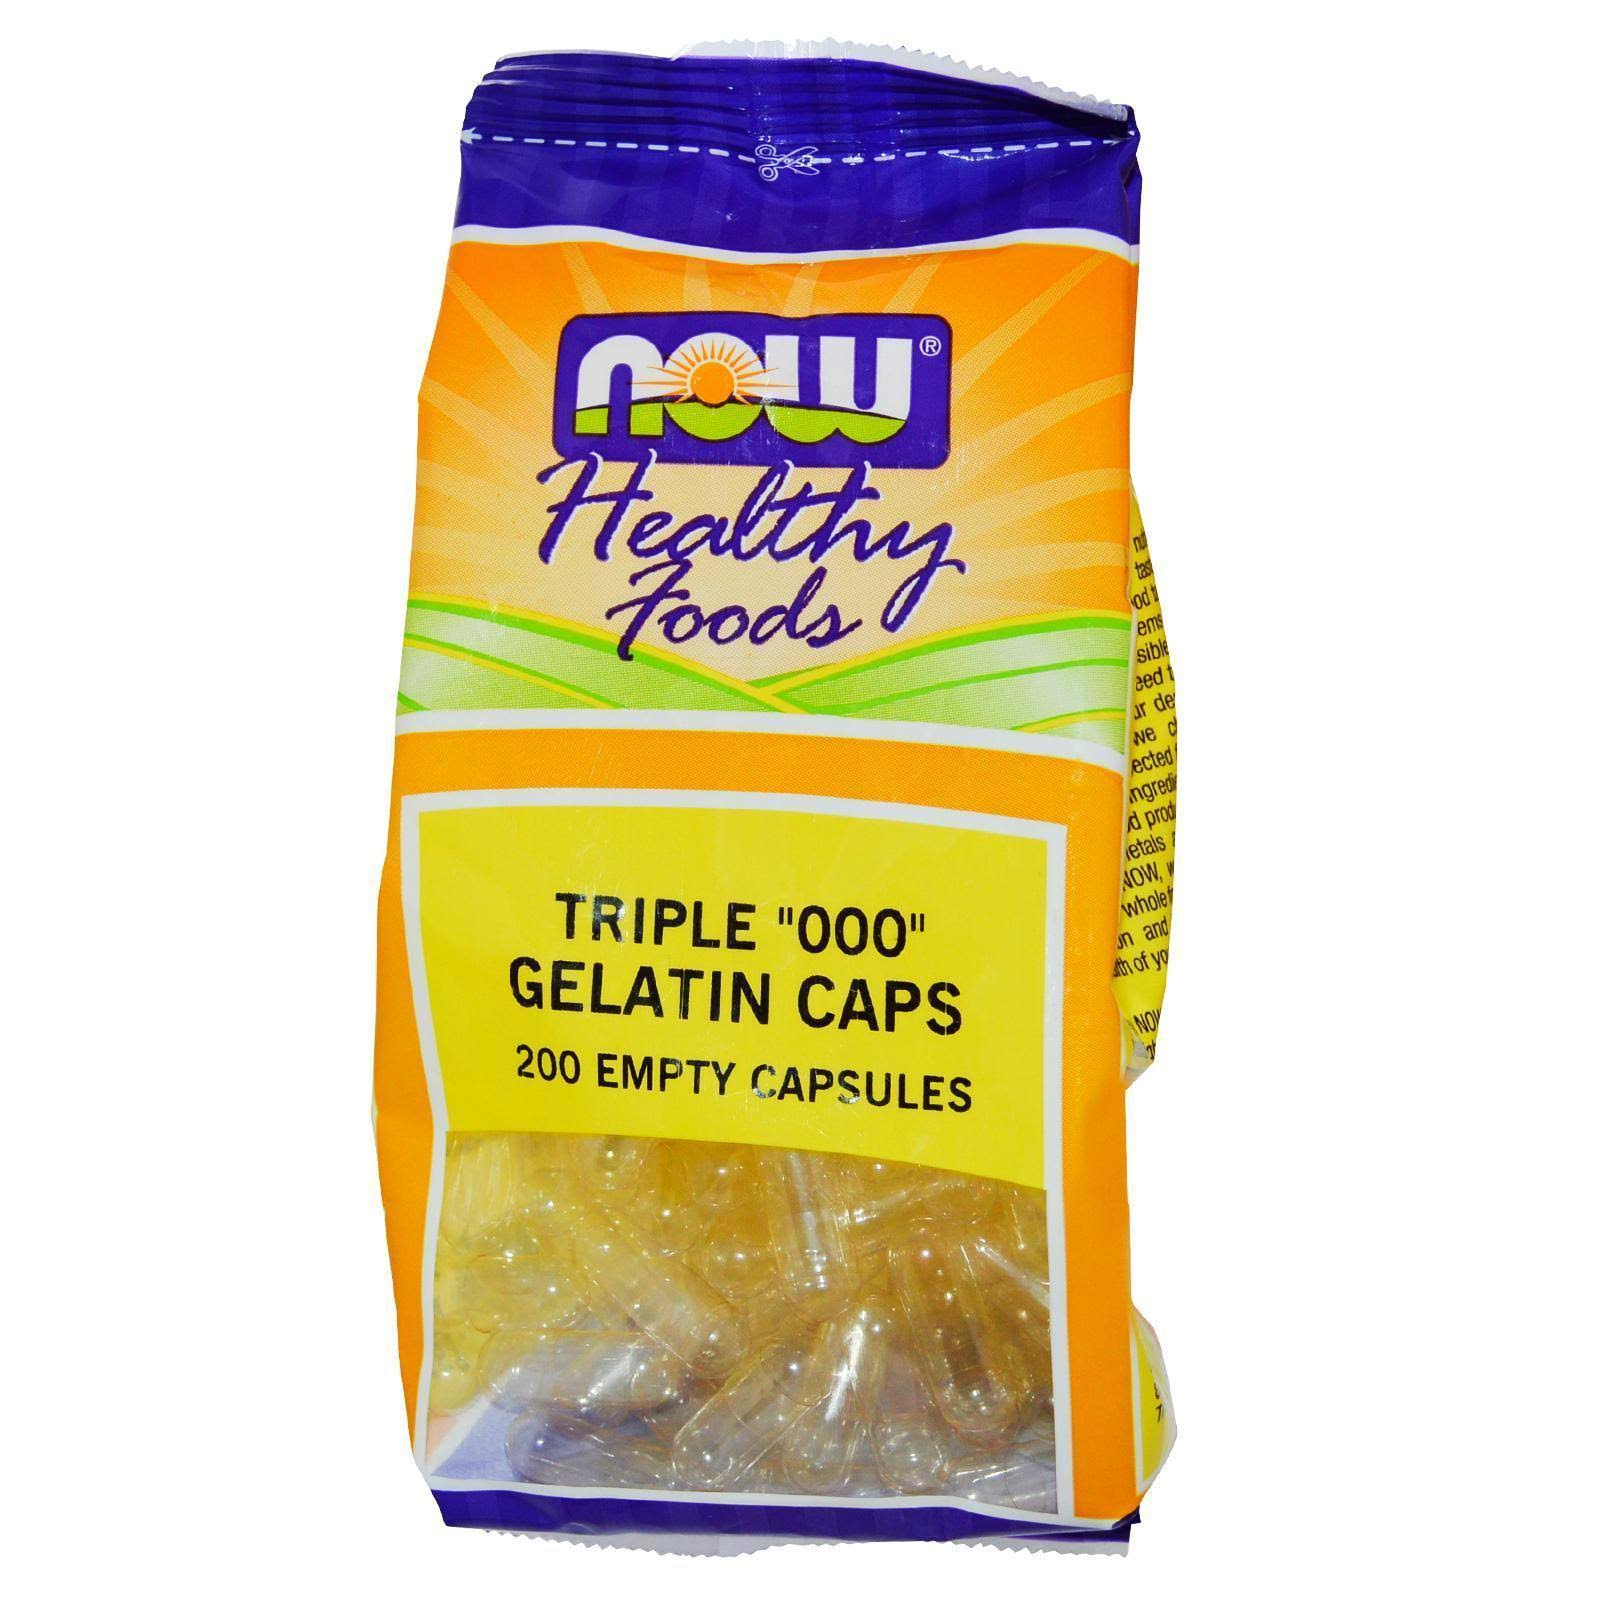 "Now Foods Triple 000"" Gelatin Caps - 200 Capsules"